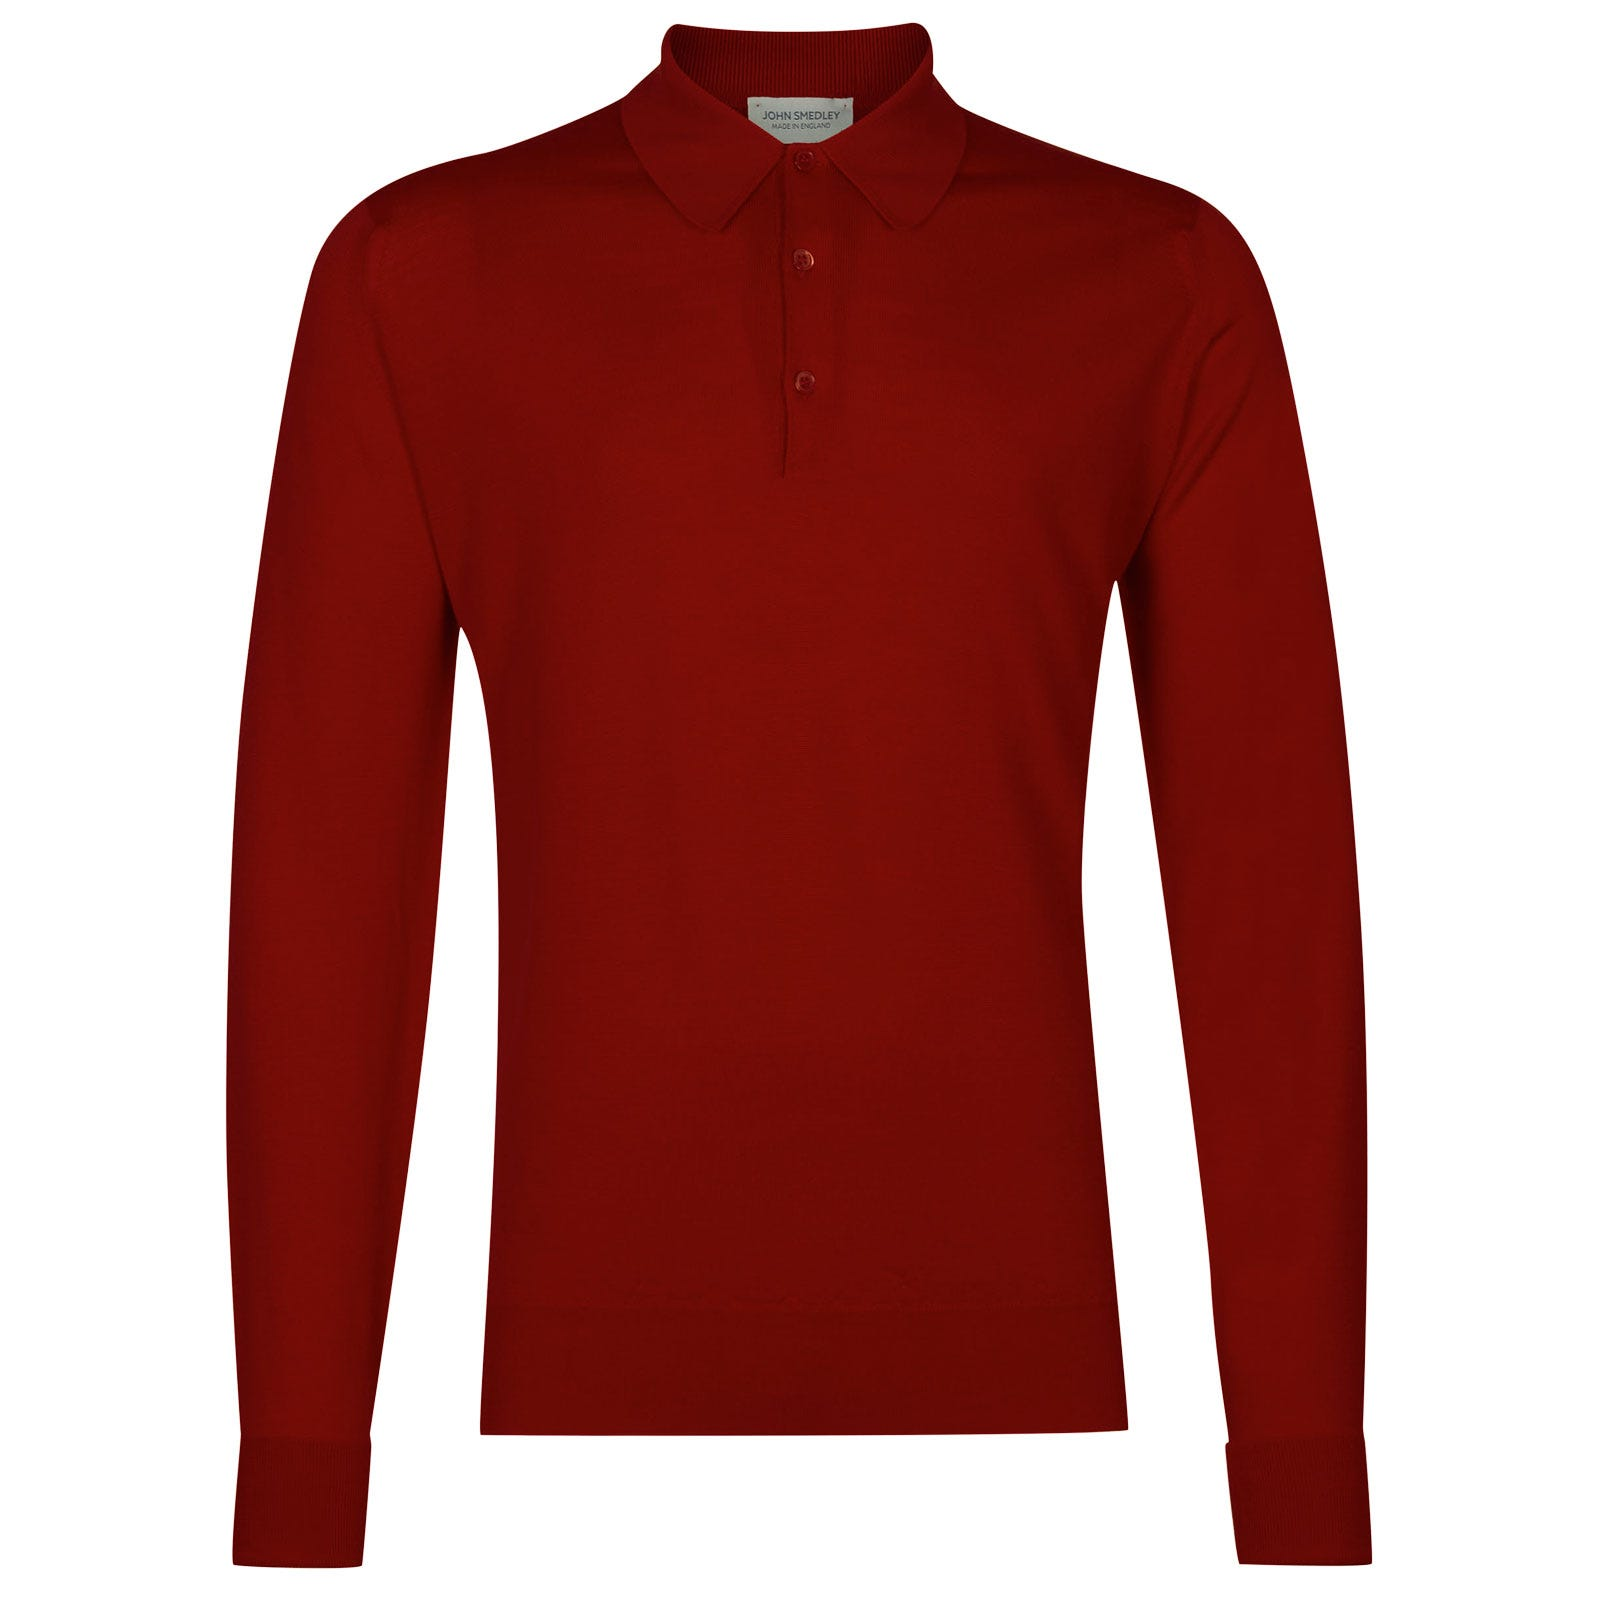 John Smedley dorset Merino Wool Shirt in Dandy Red-XXL